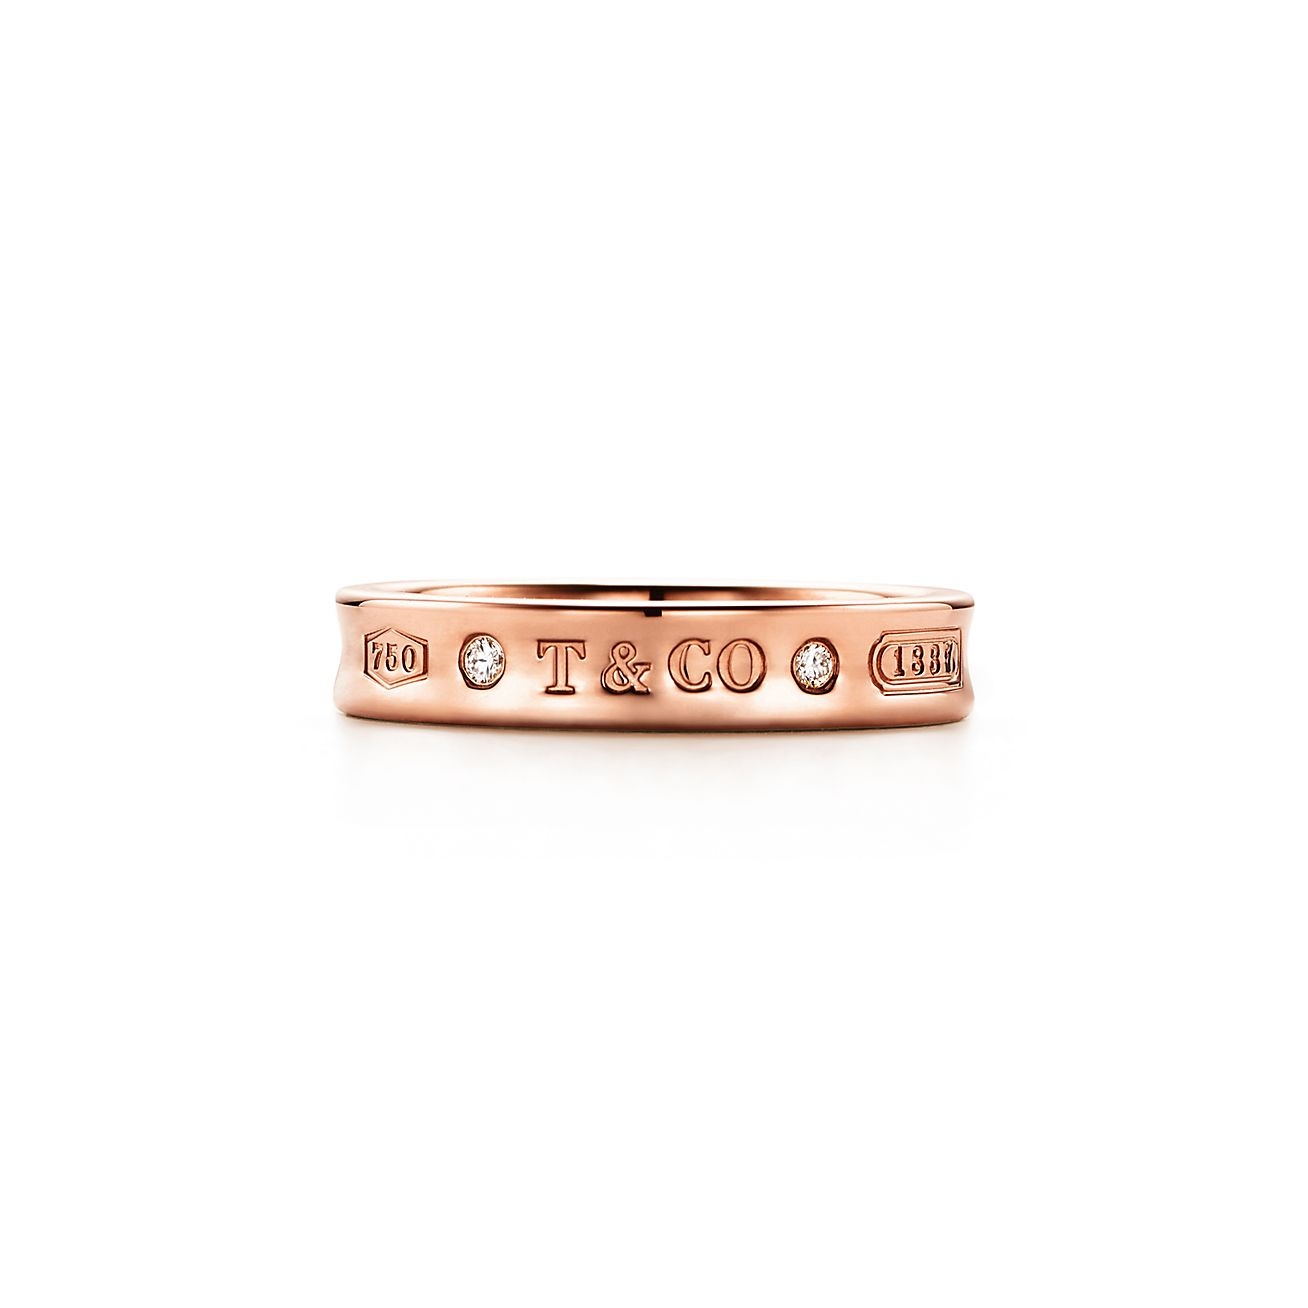 Tiffany 1837 narrow ring in 18k rose gold with diamonds - Size 11 1/2 Tiffany & Co.